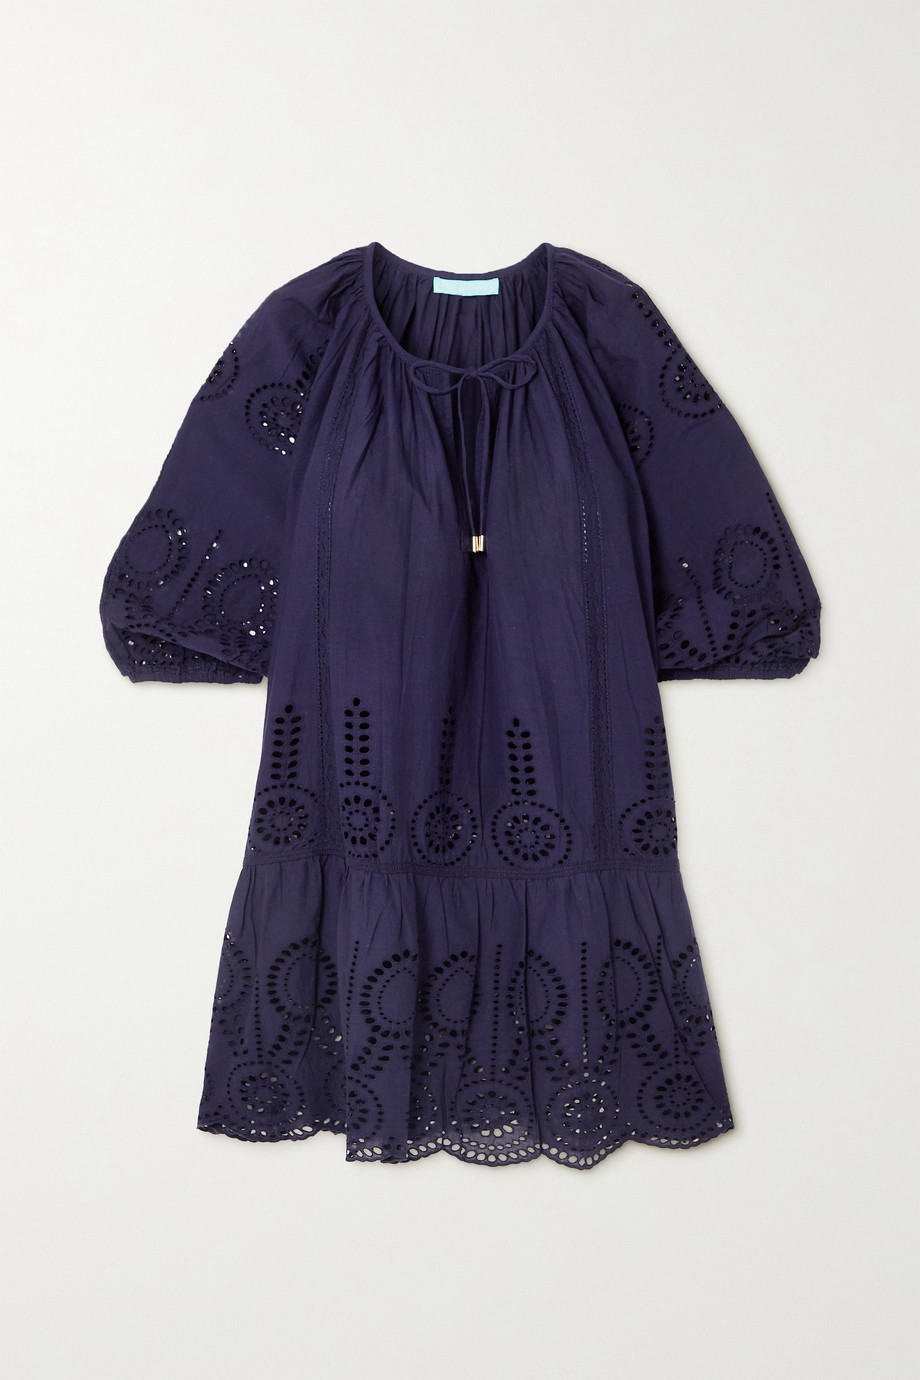 Melissa Odabash Ashley lace-trimmed broderie anglaise cotton kaftan